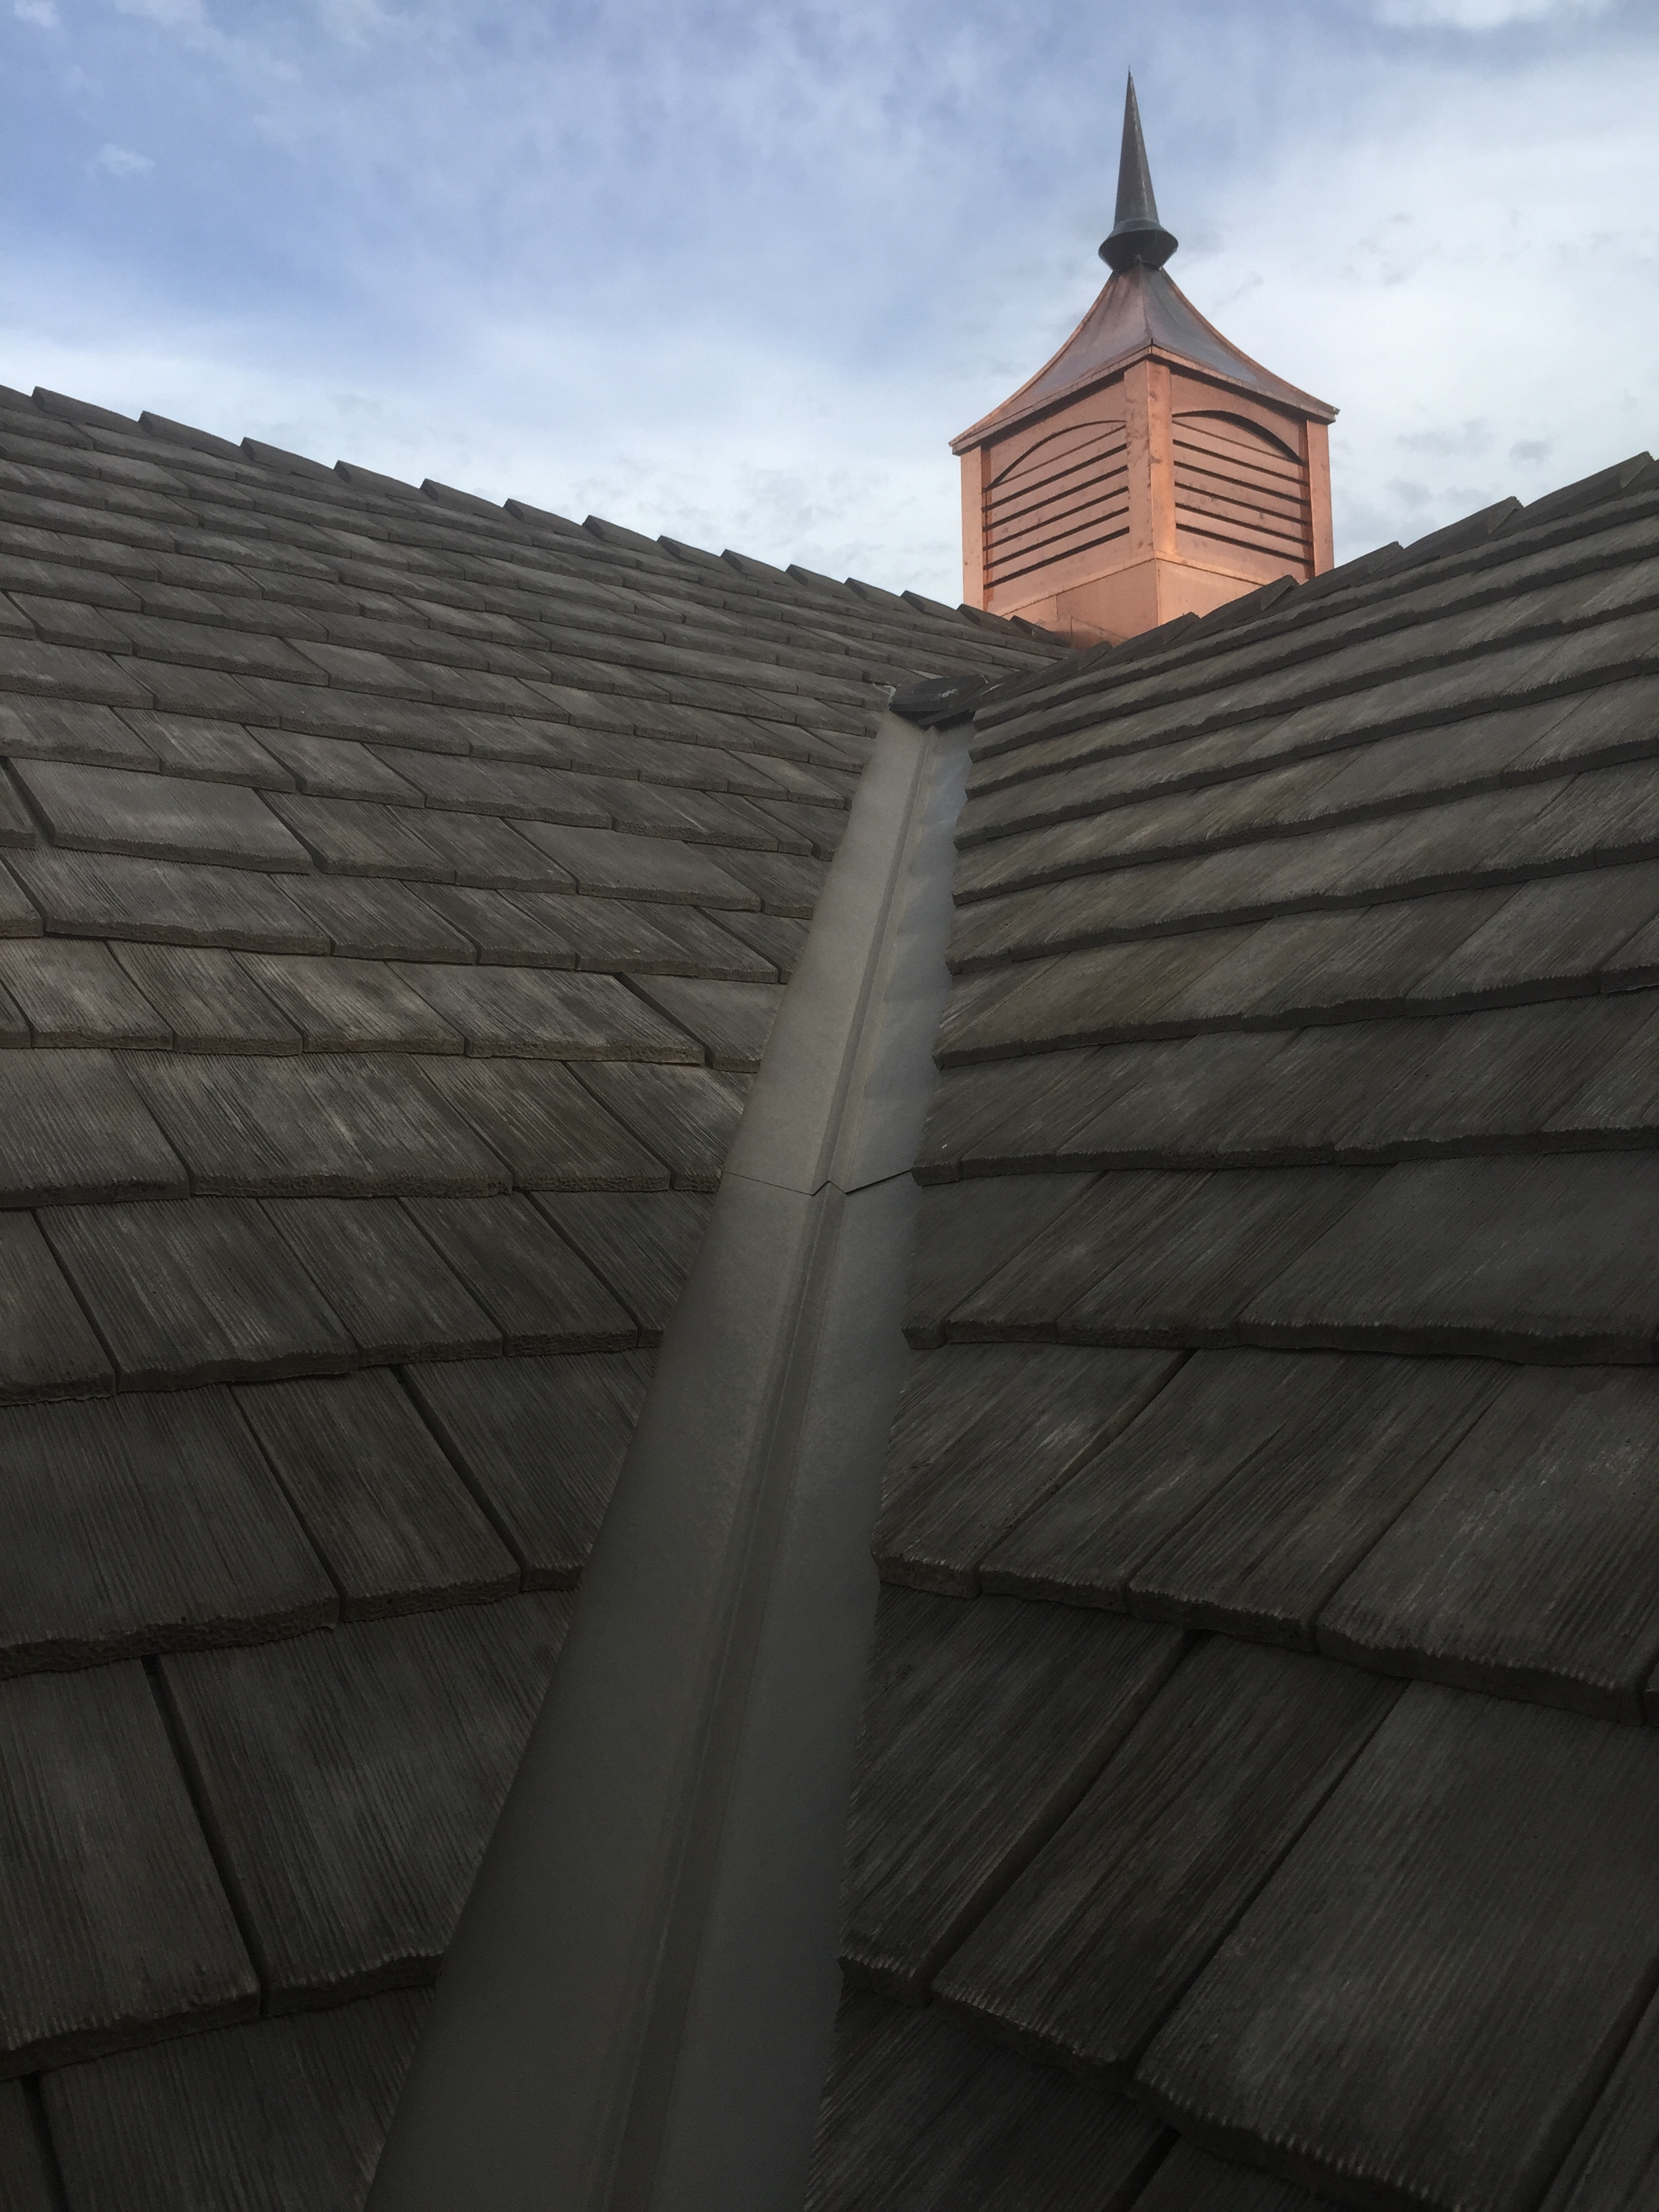 this-is-a-photo-of-a-beauitful-synthetic-composite-faux-cedar-shake-shingle-cedur-roof-homeonwers-rexburg-idaho.JPG